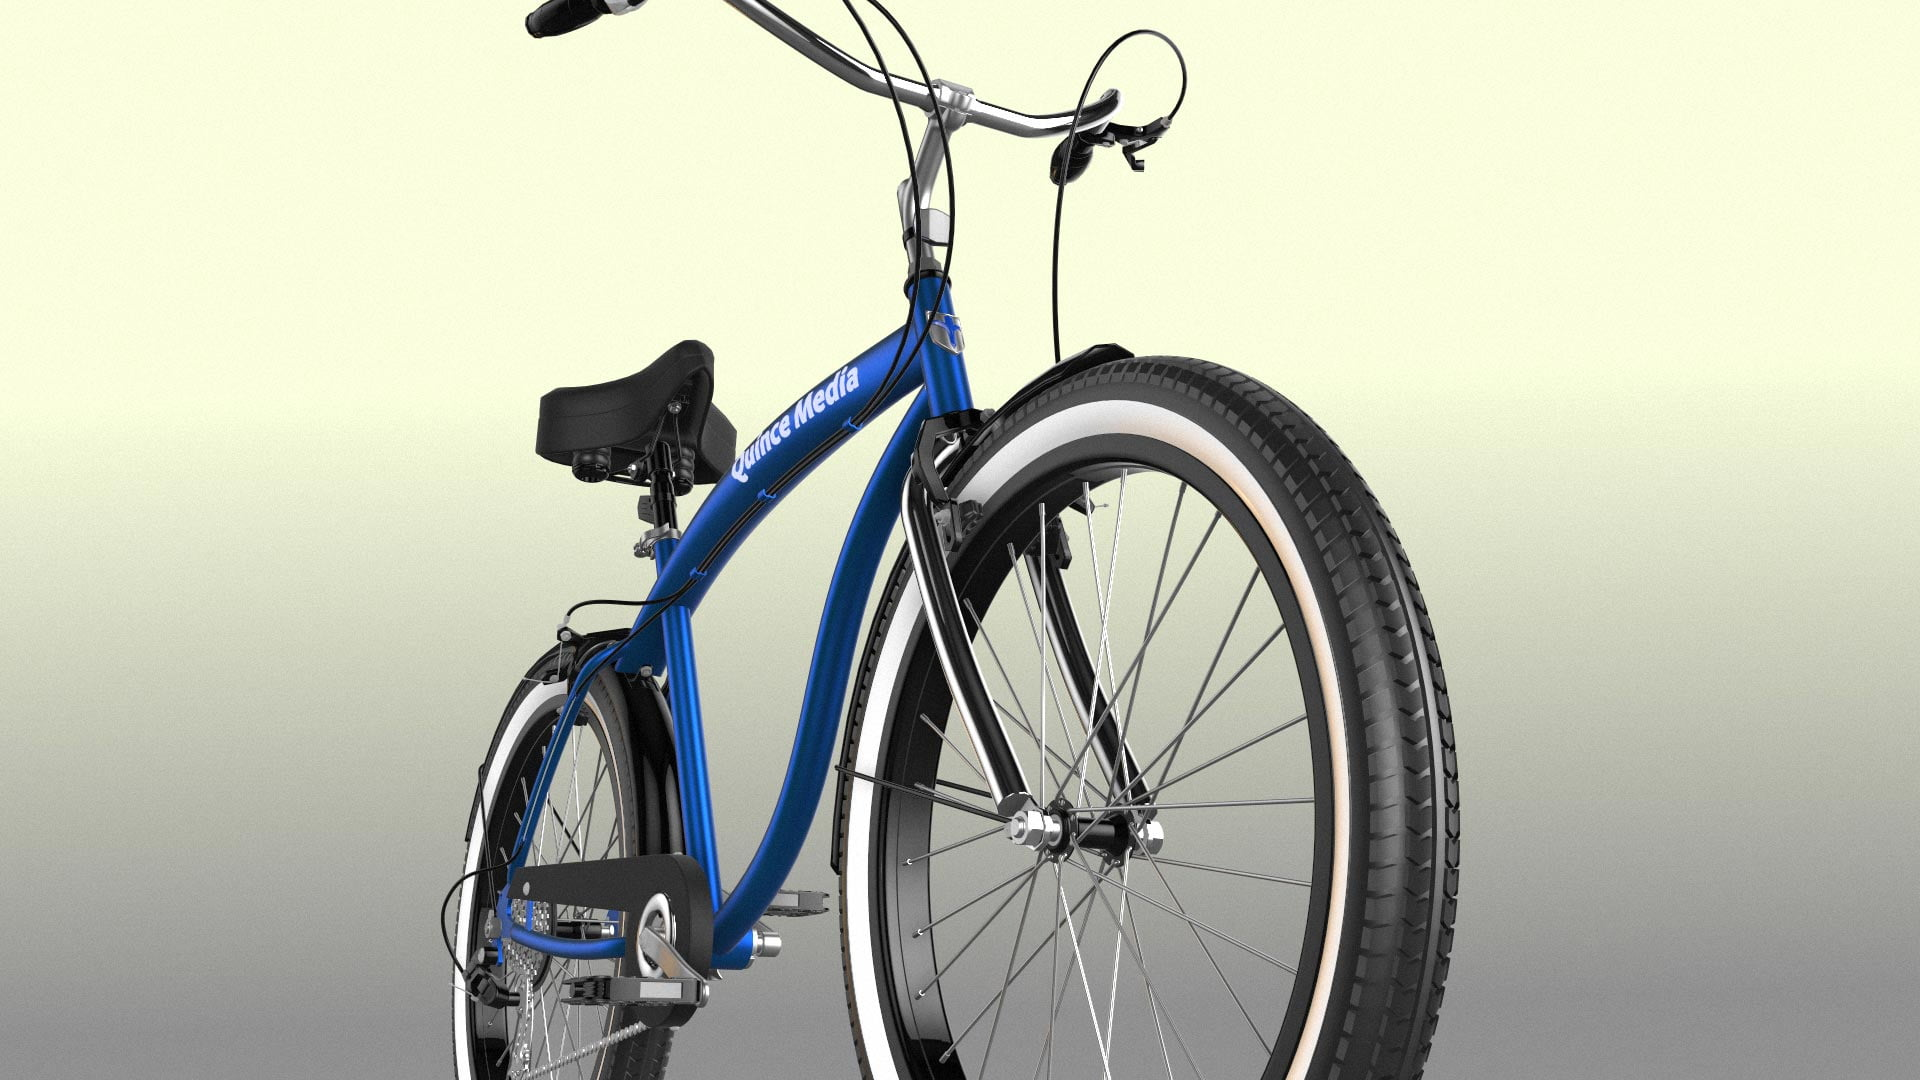 Bicycle 3D Model Rendering